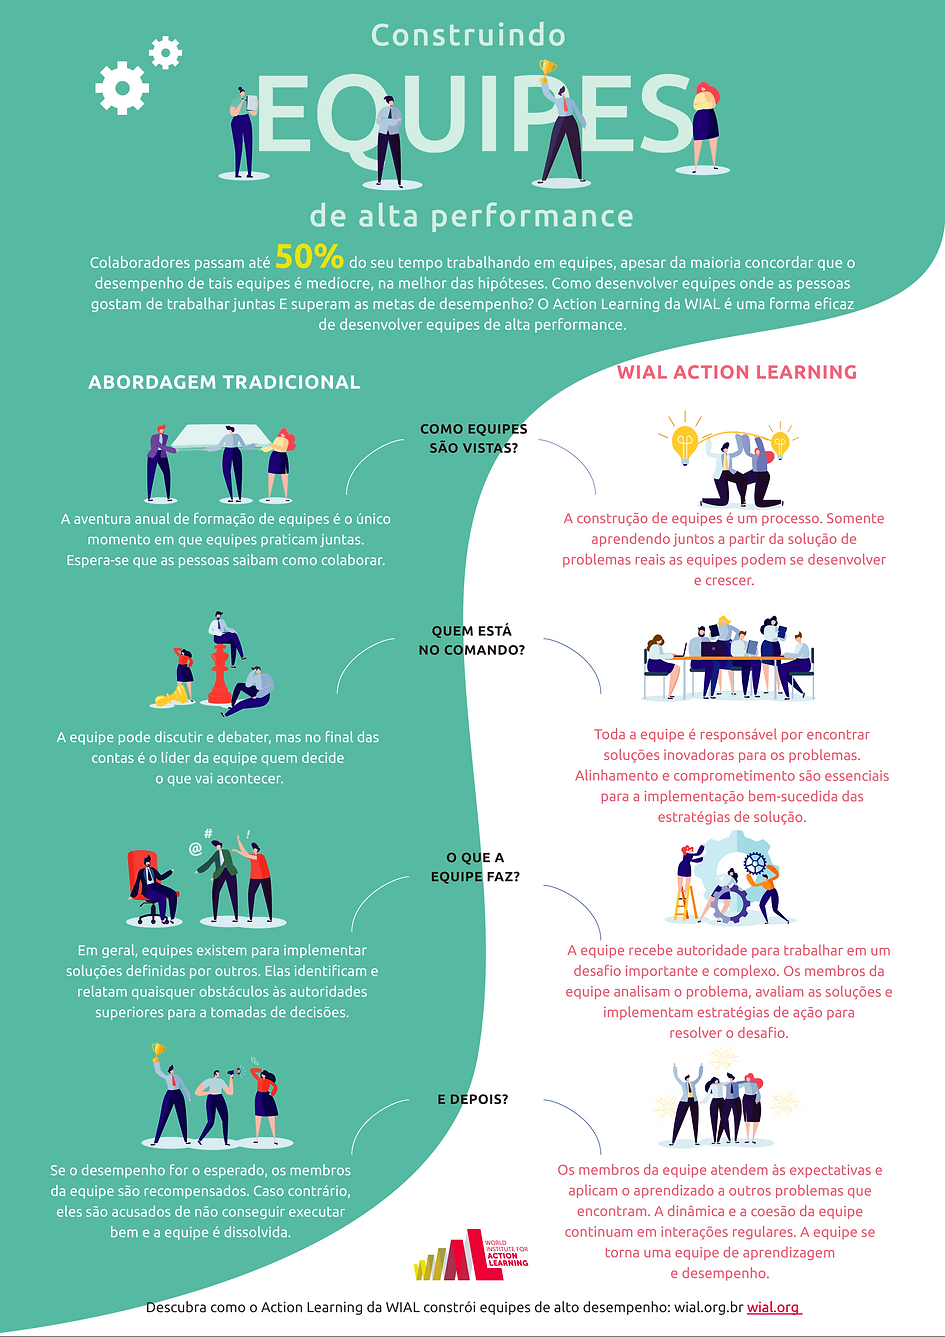 poster-building-high-performance-teams--